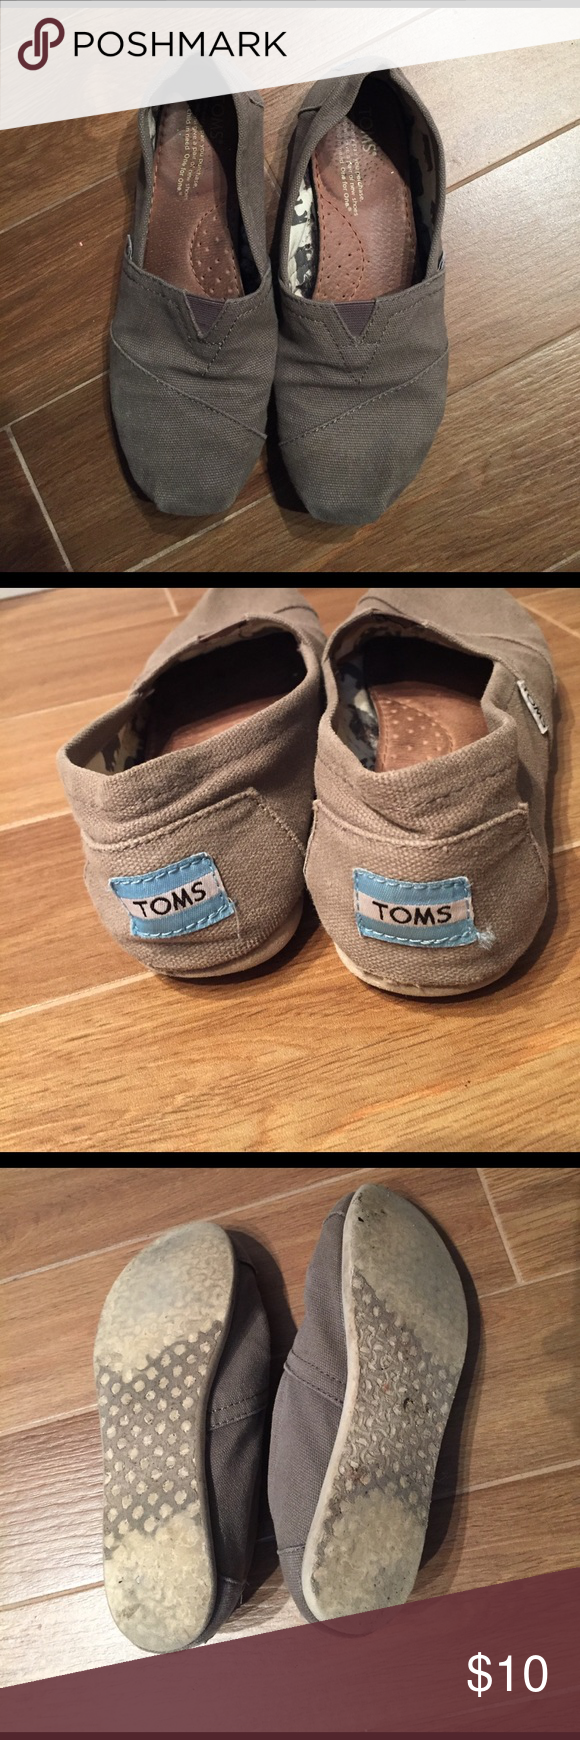 Tom's Classic Shoes Toms canvas classic slip ons. Used but has a lot of life left TOMS Shoes Flats & Loafers